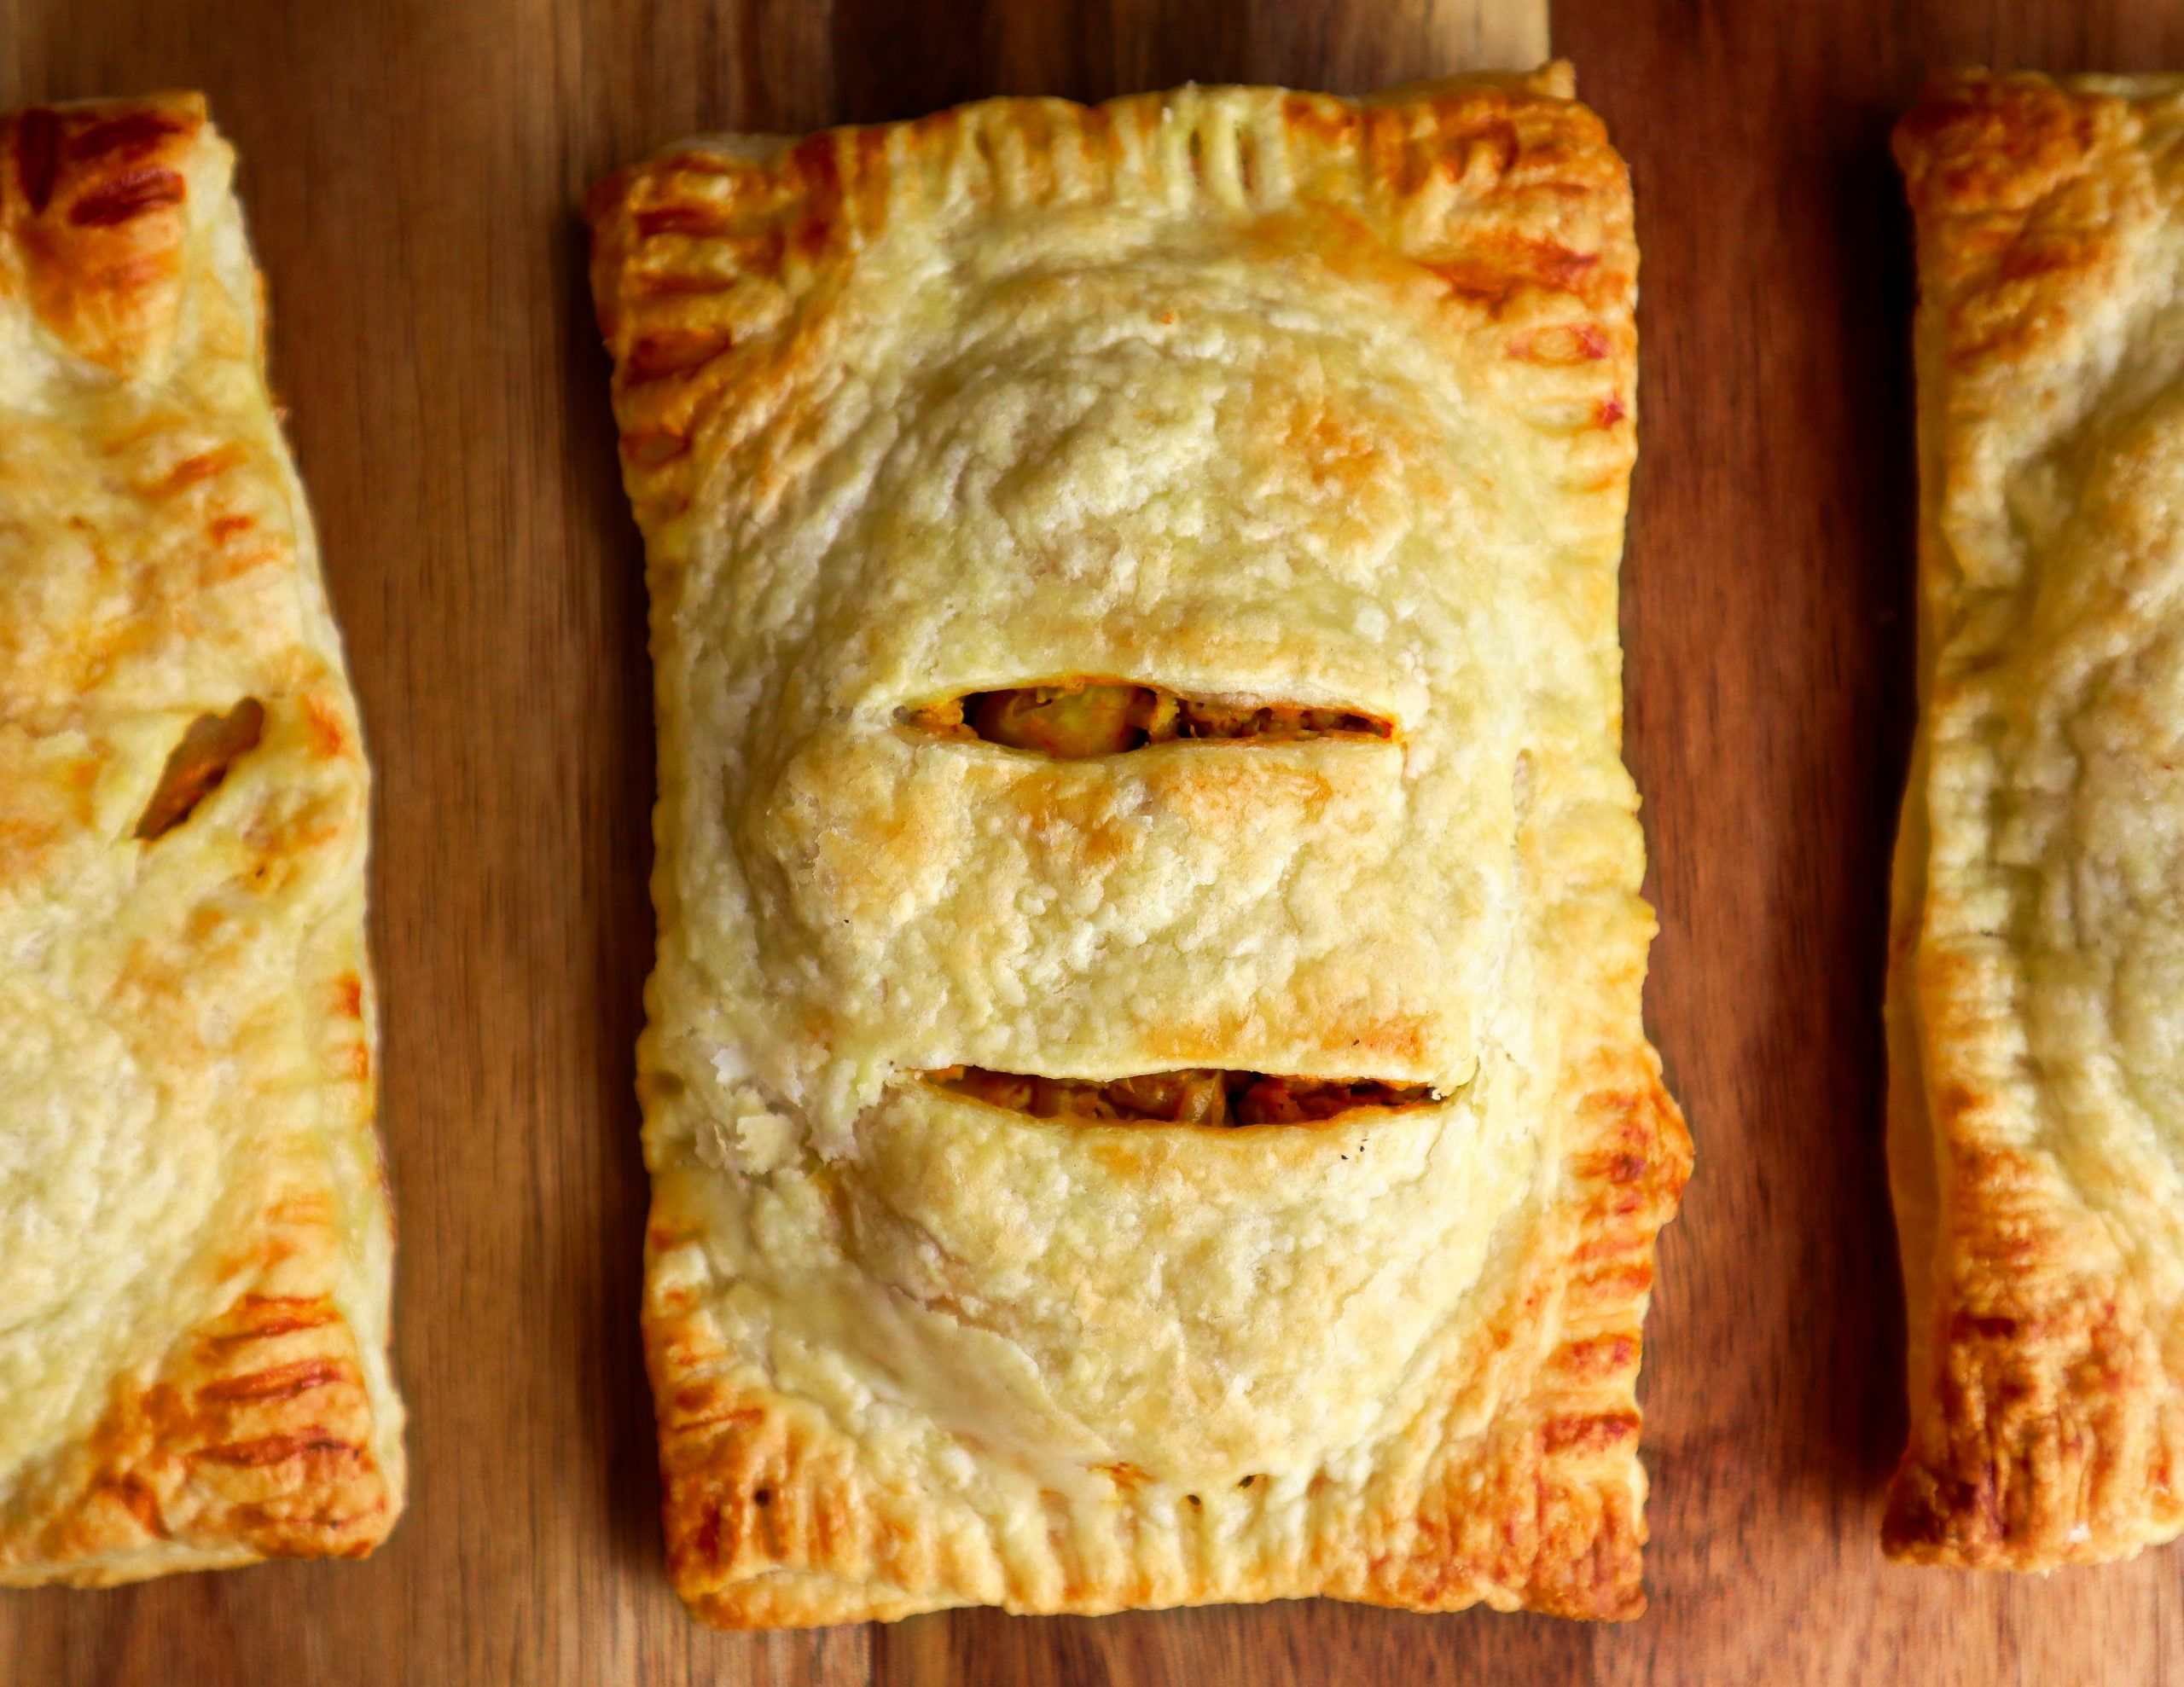 Today I M Showing You How To Make Savory Vegan Tofu And Veggies Hand Pies So If You Re Looking For Vegan Puff Pastry R In 2021 Puff Pastry Recipes Savory Vegan Pastry